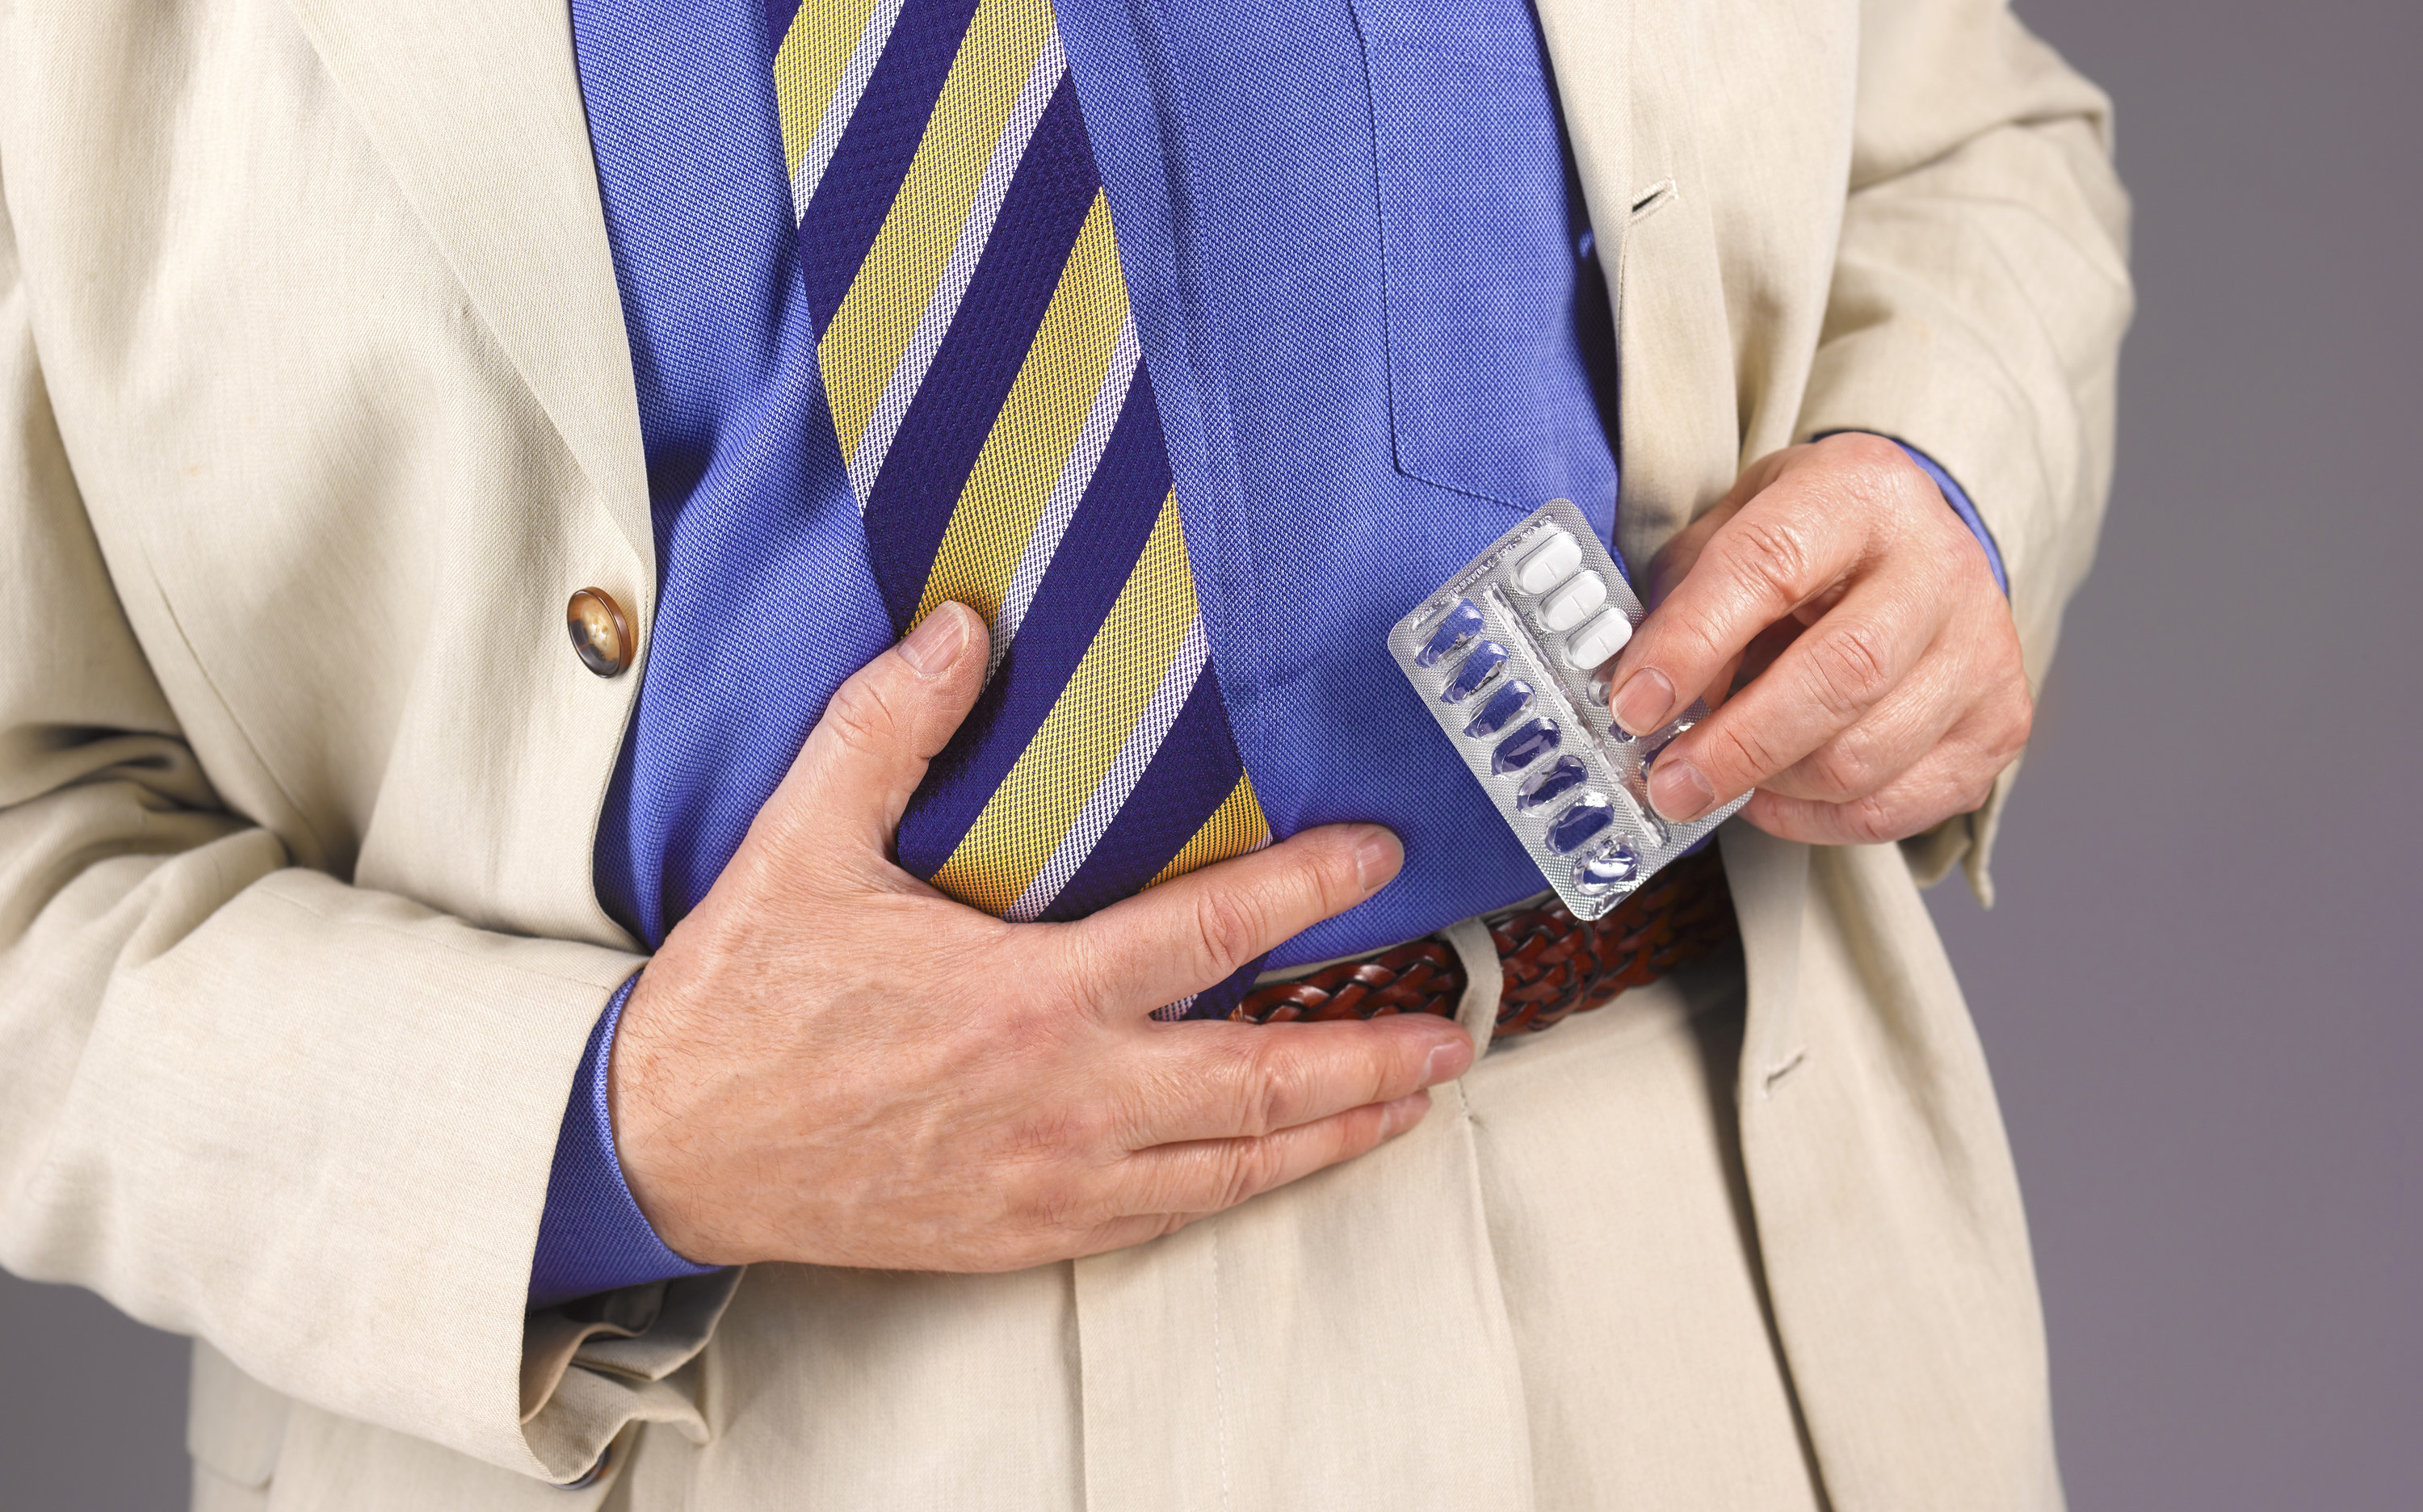 A man holds his stomach while also holding a packet of pills